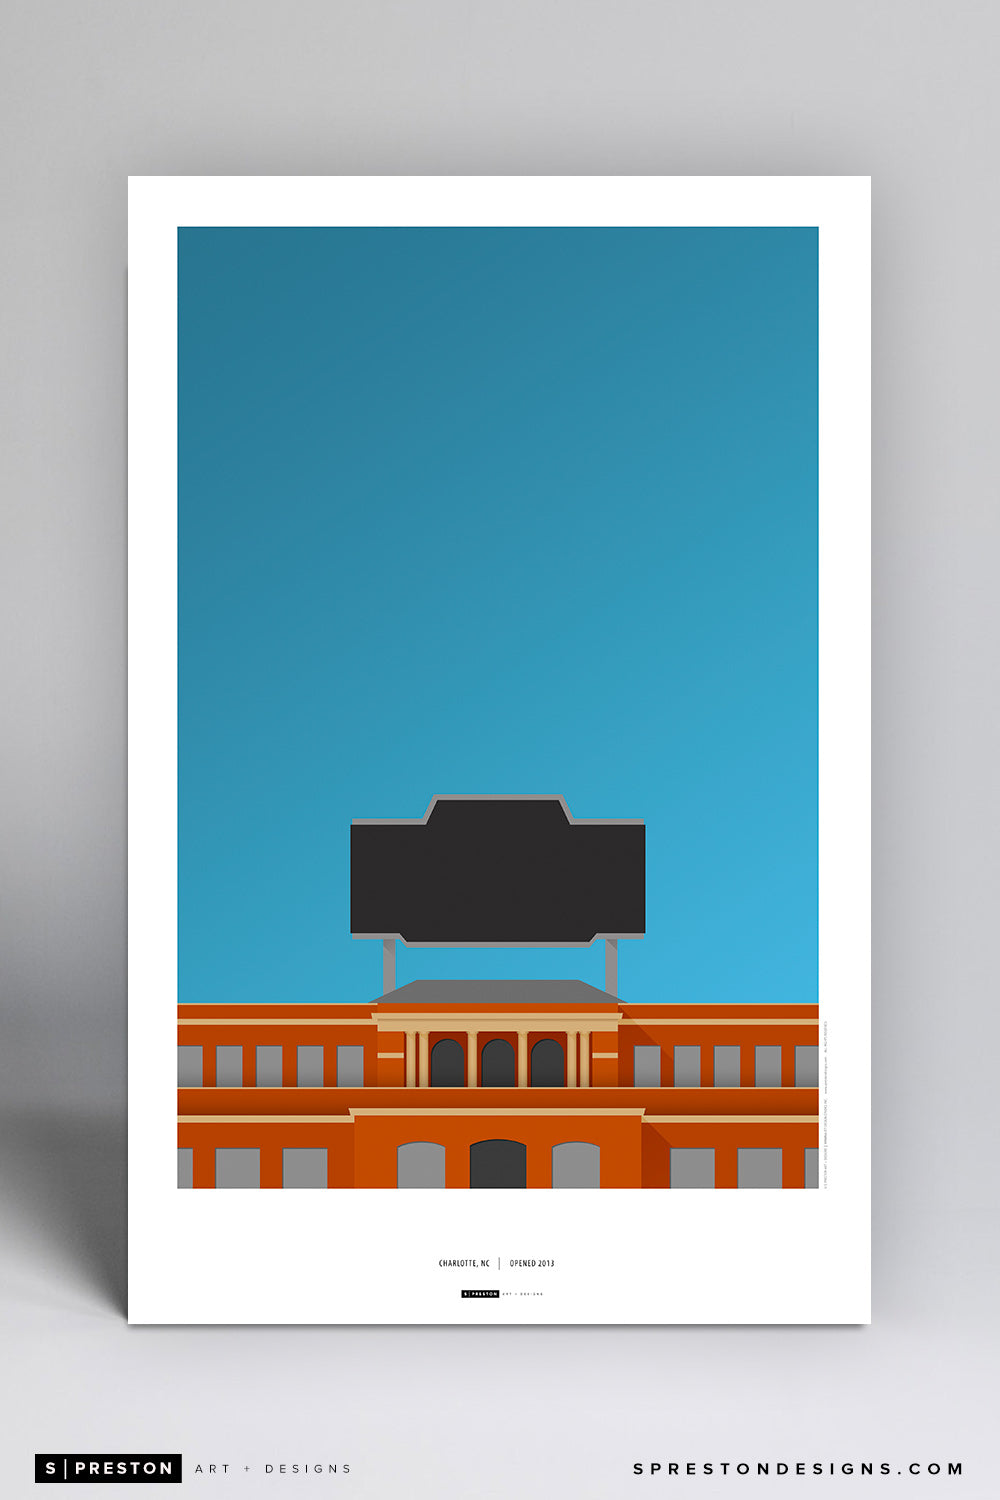 Minimalist Jerry Richardson Stadium Poster Print UNC at Charlotte - S Preston